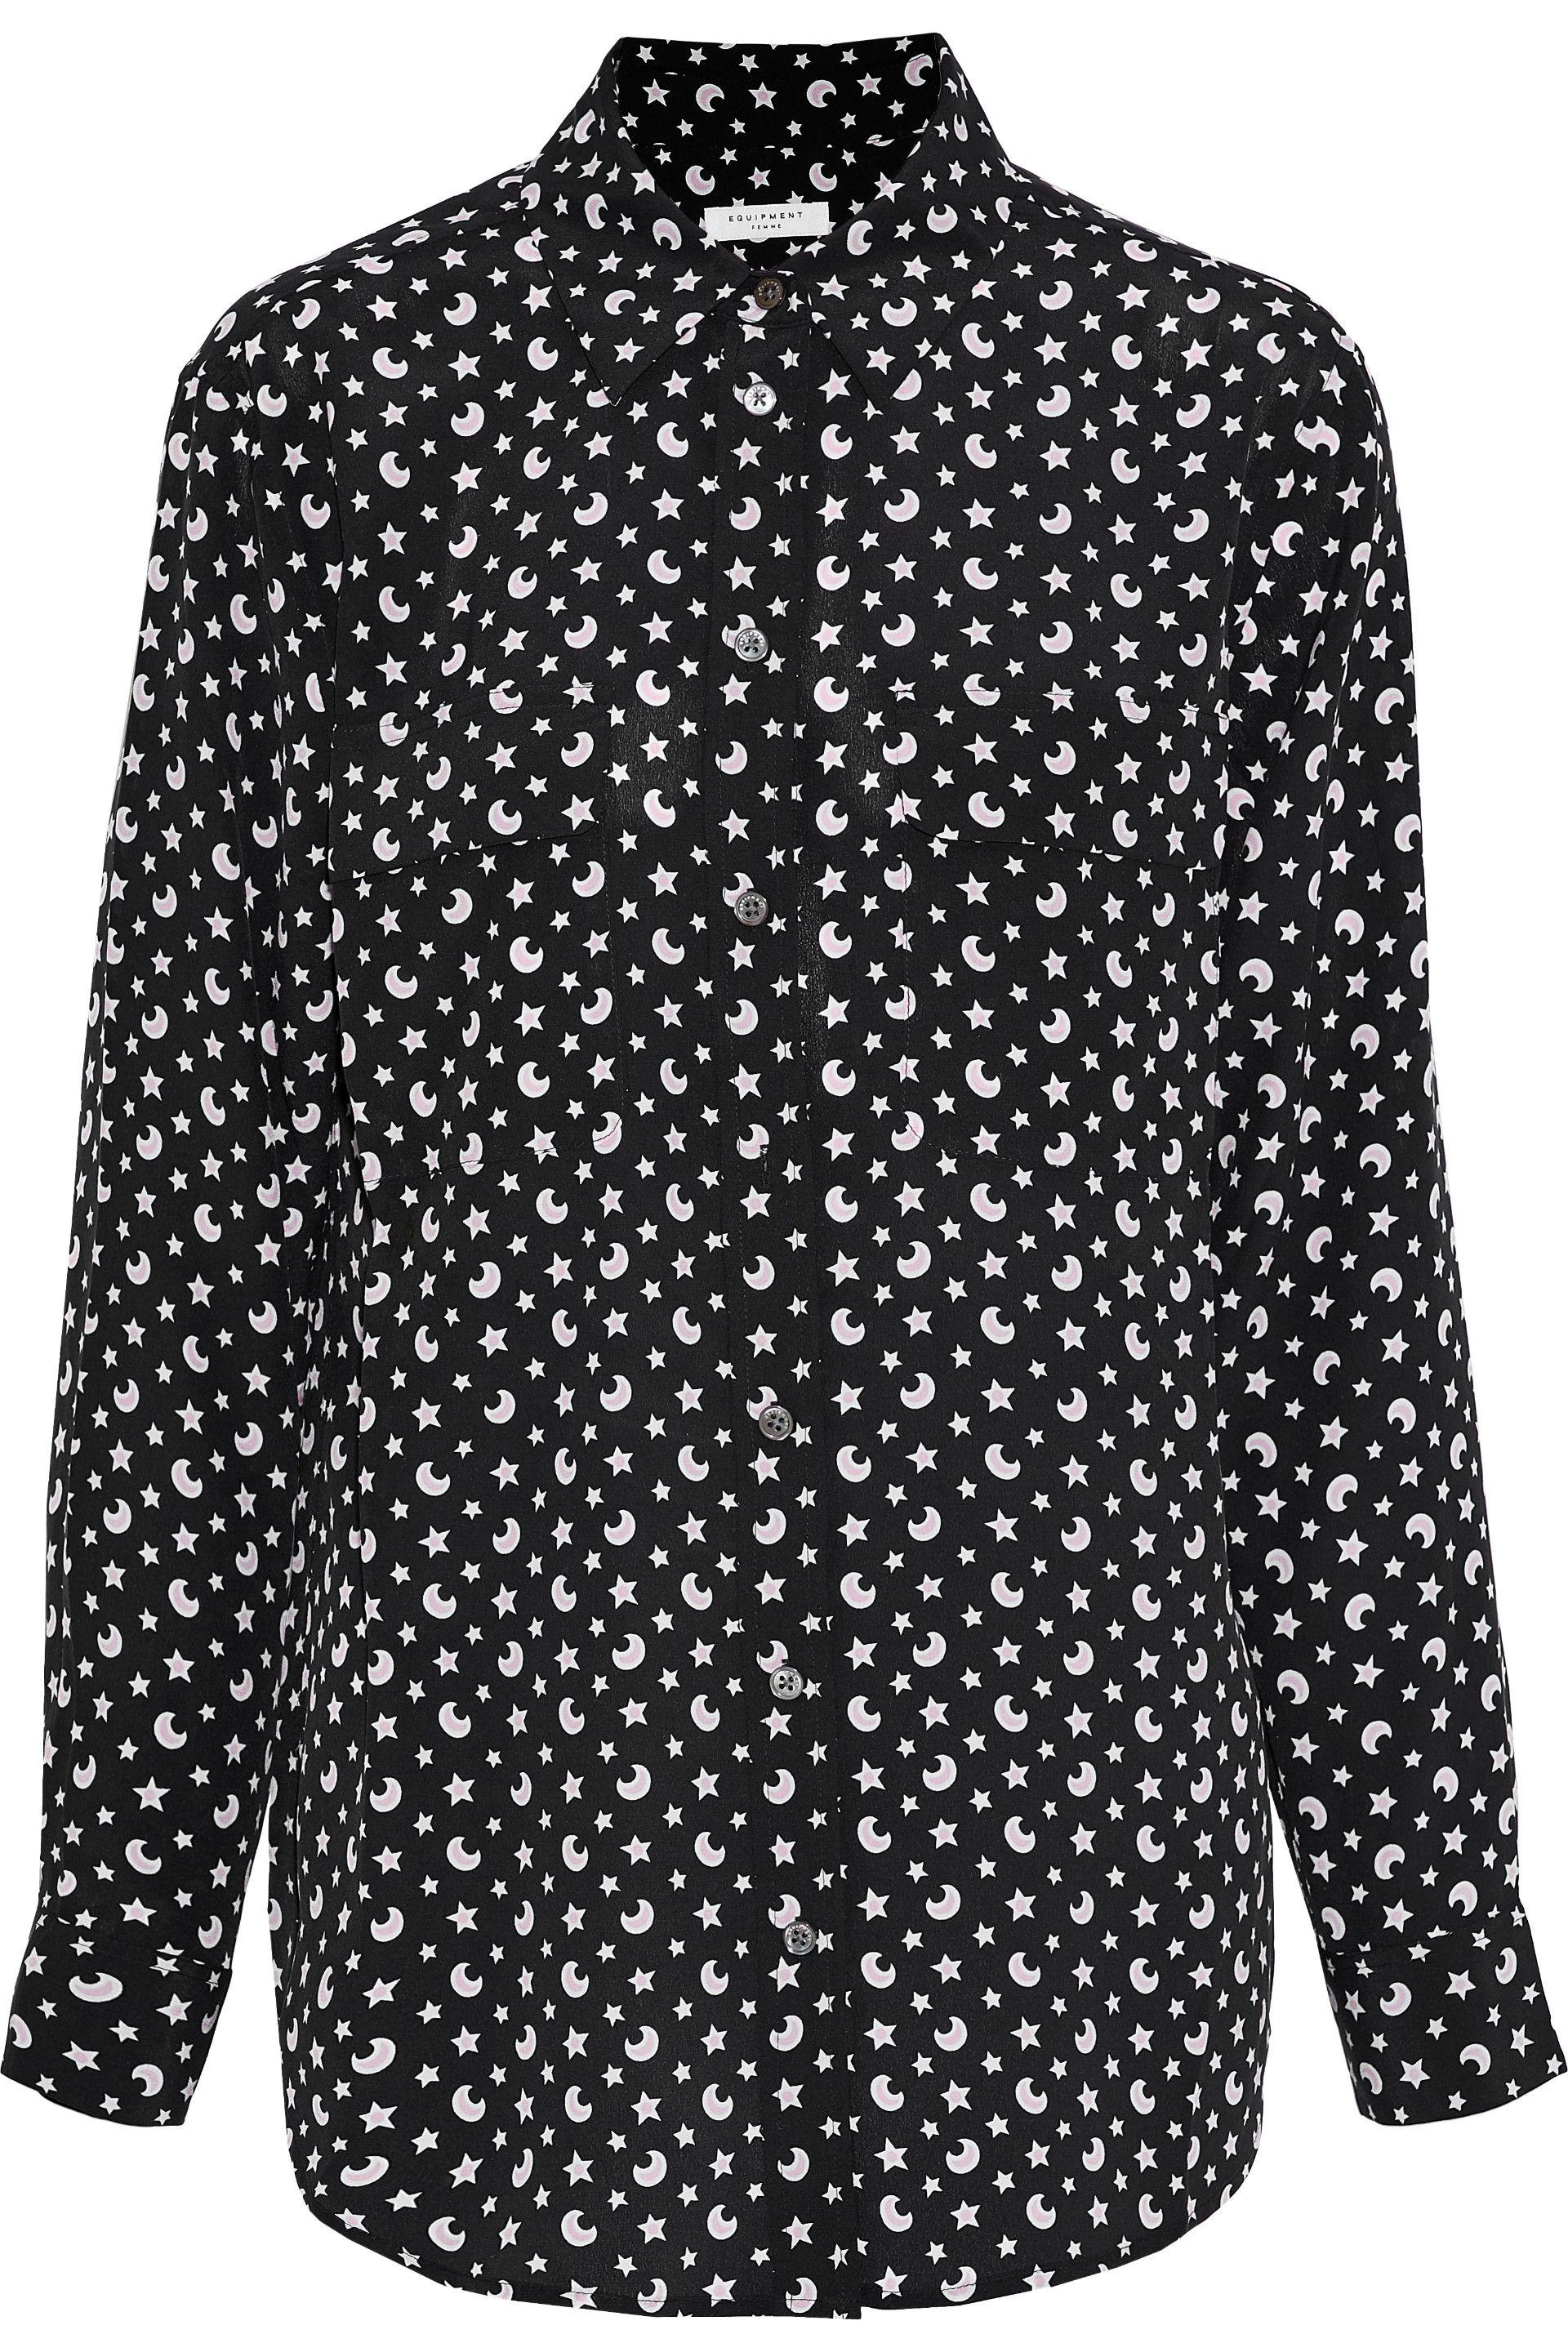 0b606e7d94d64 Lyst - Equipment Woman Signature Printed Washed-silk Shirt Black in ...